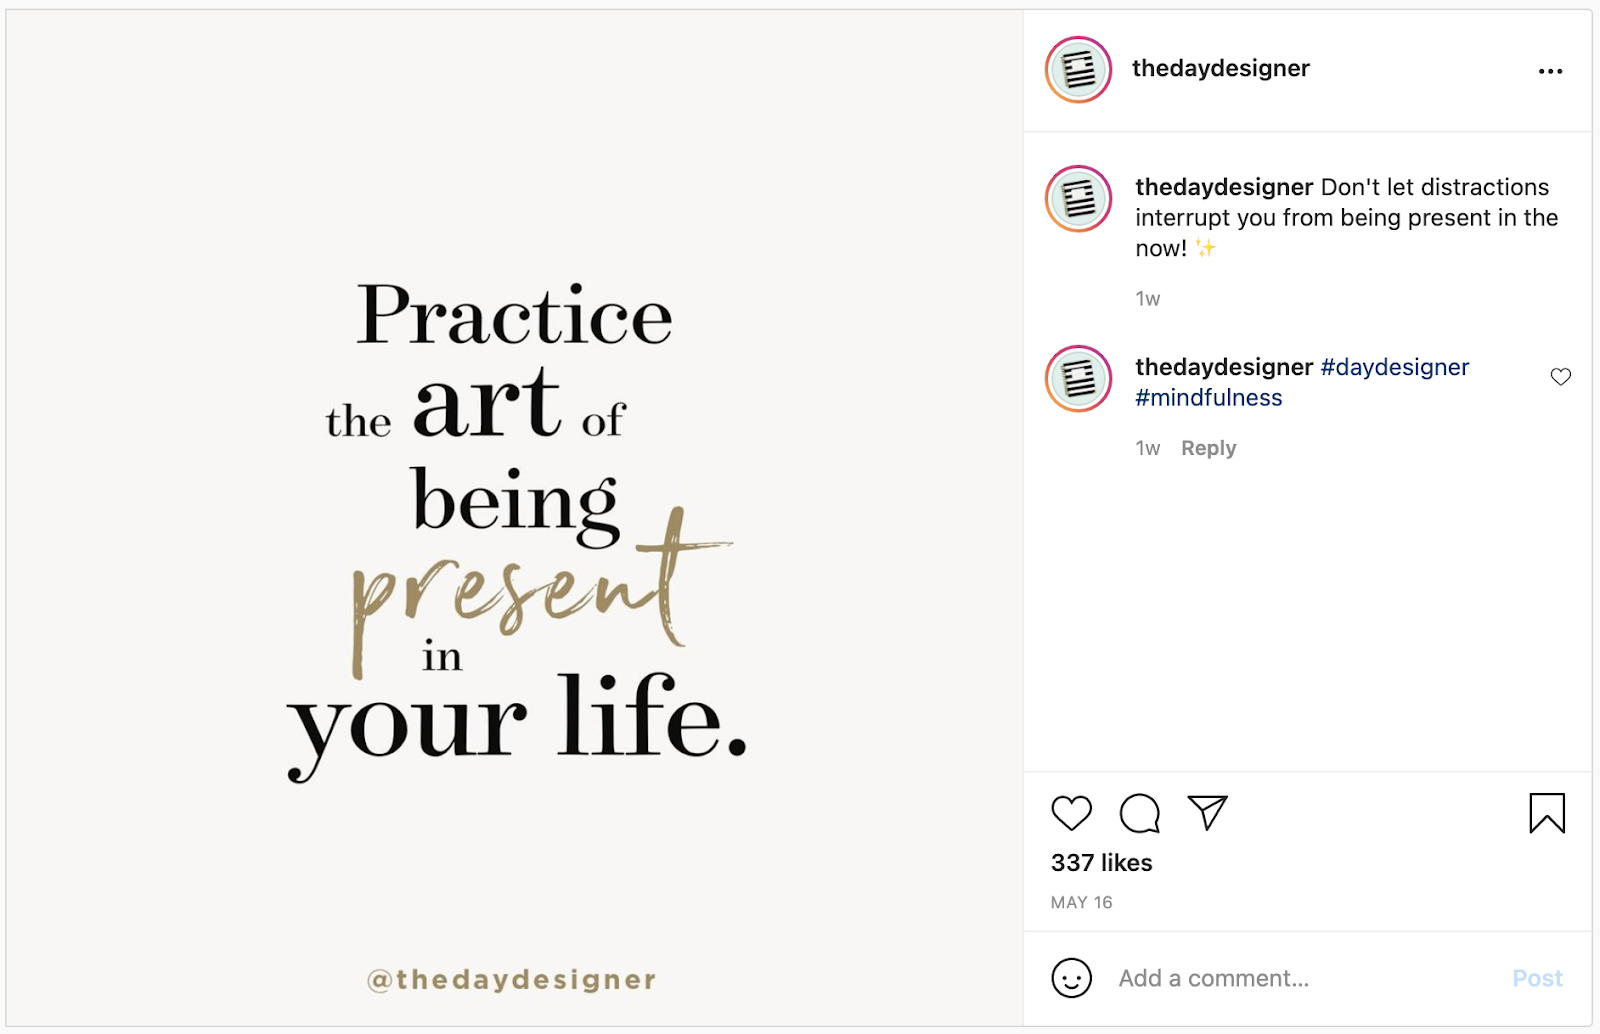 An example of a quote shared on Instagram.